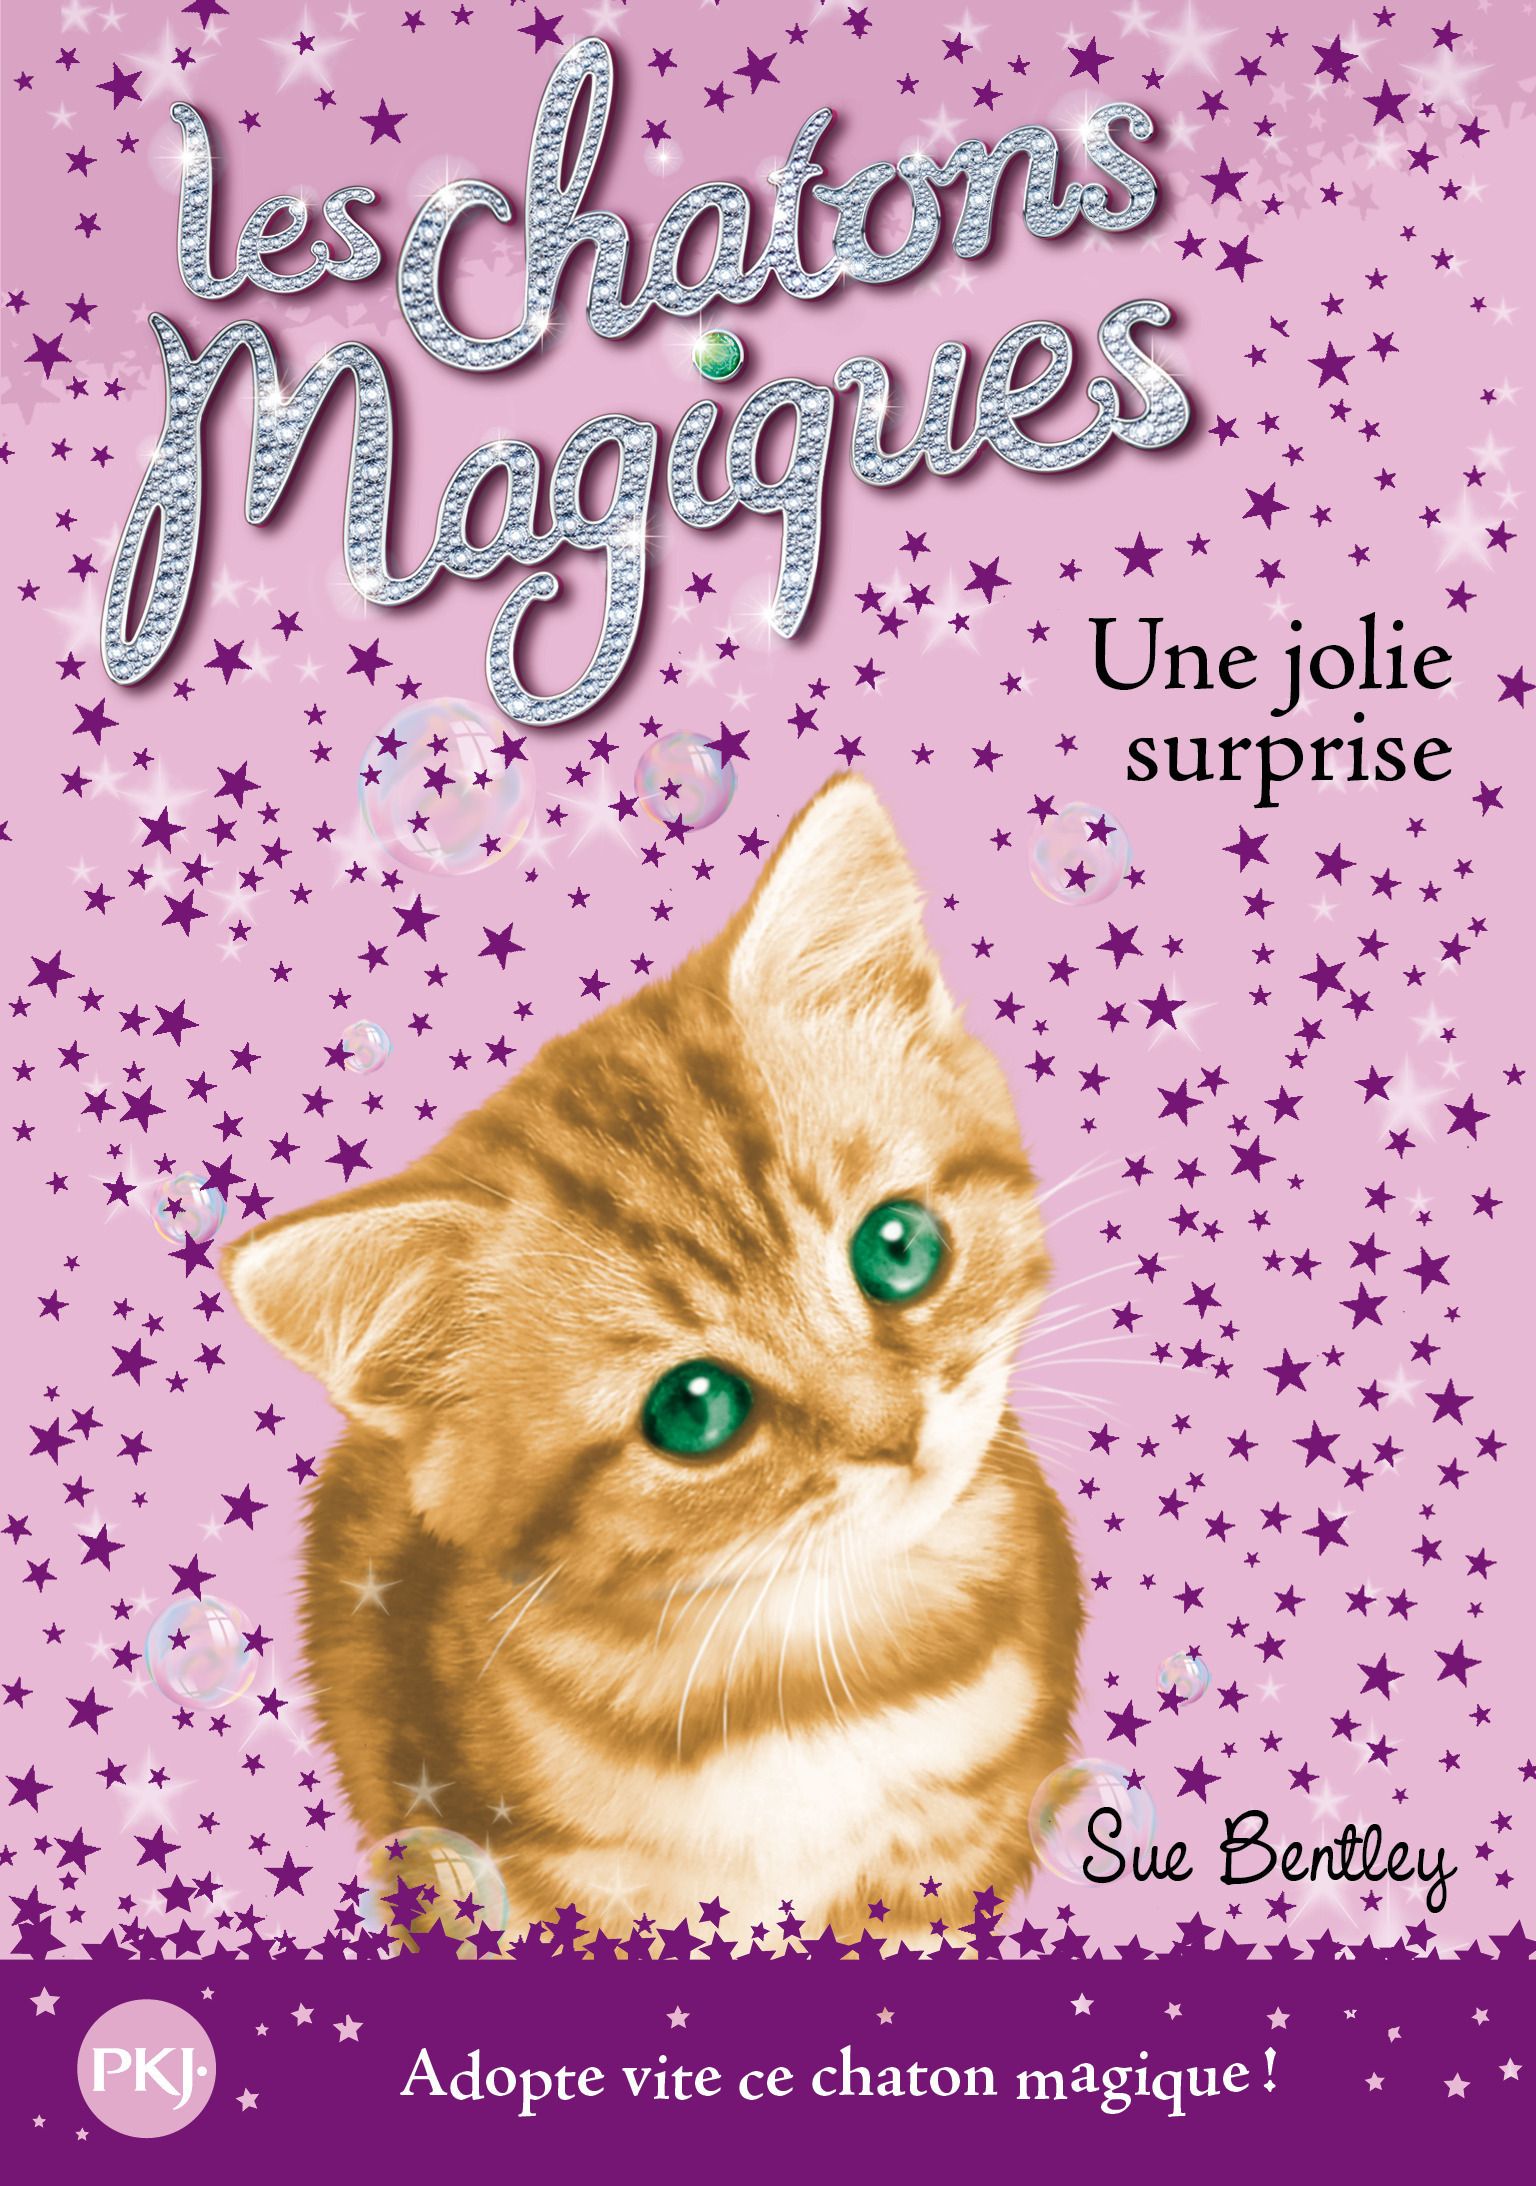 Chatons magiques